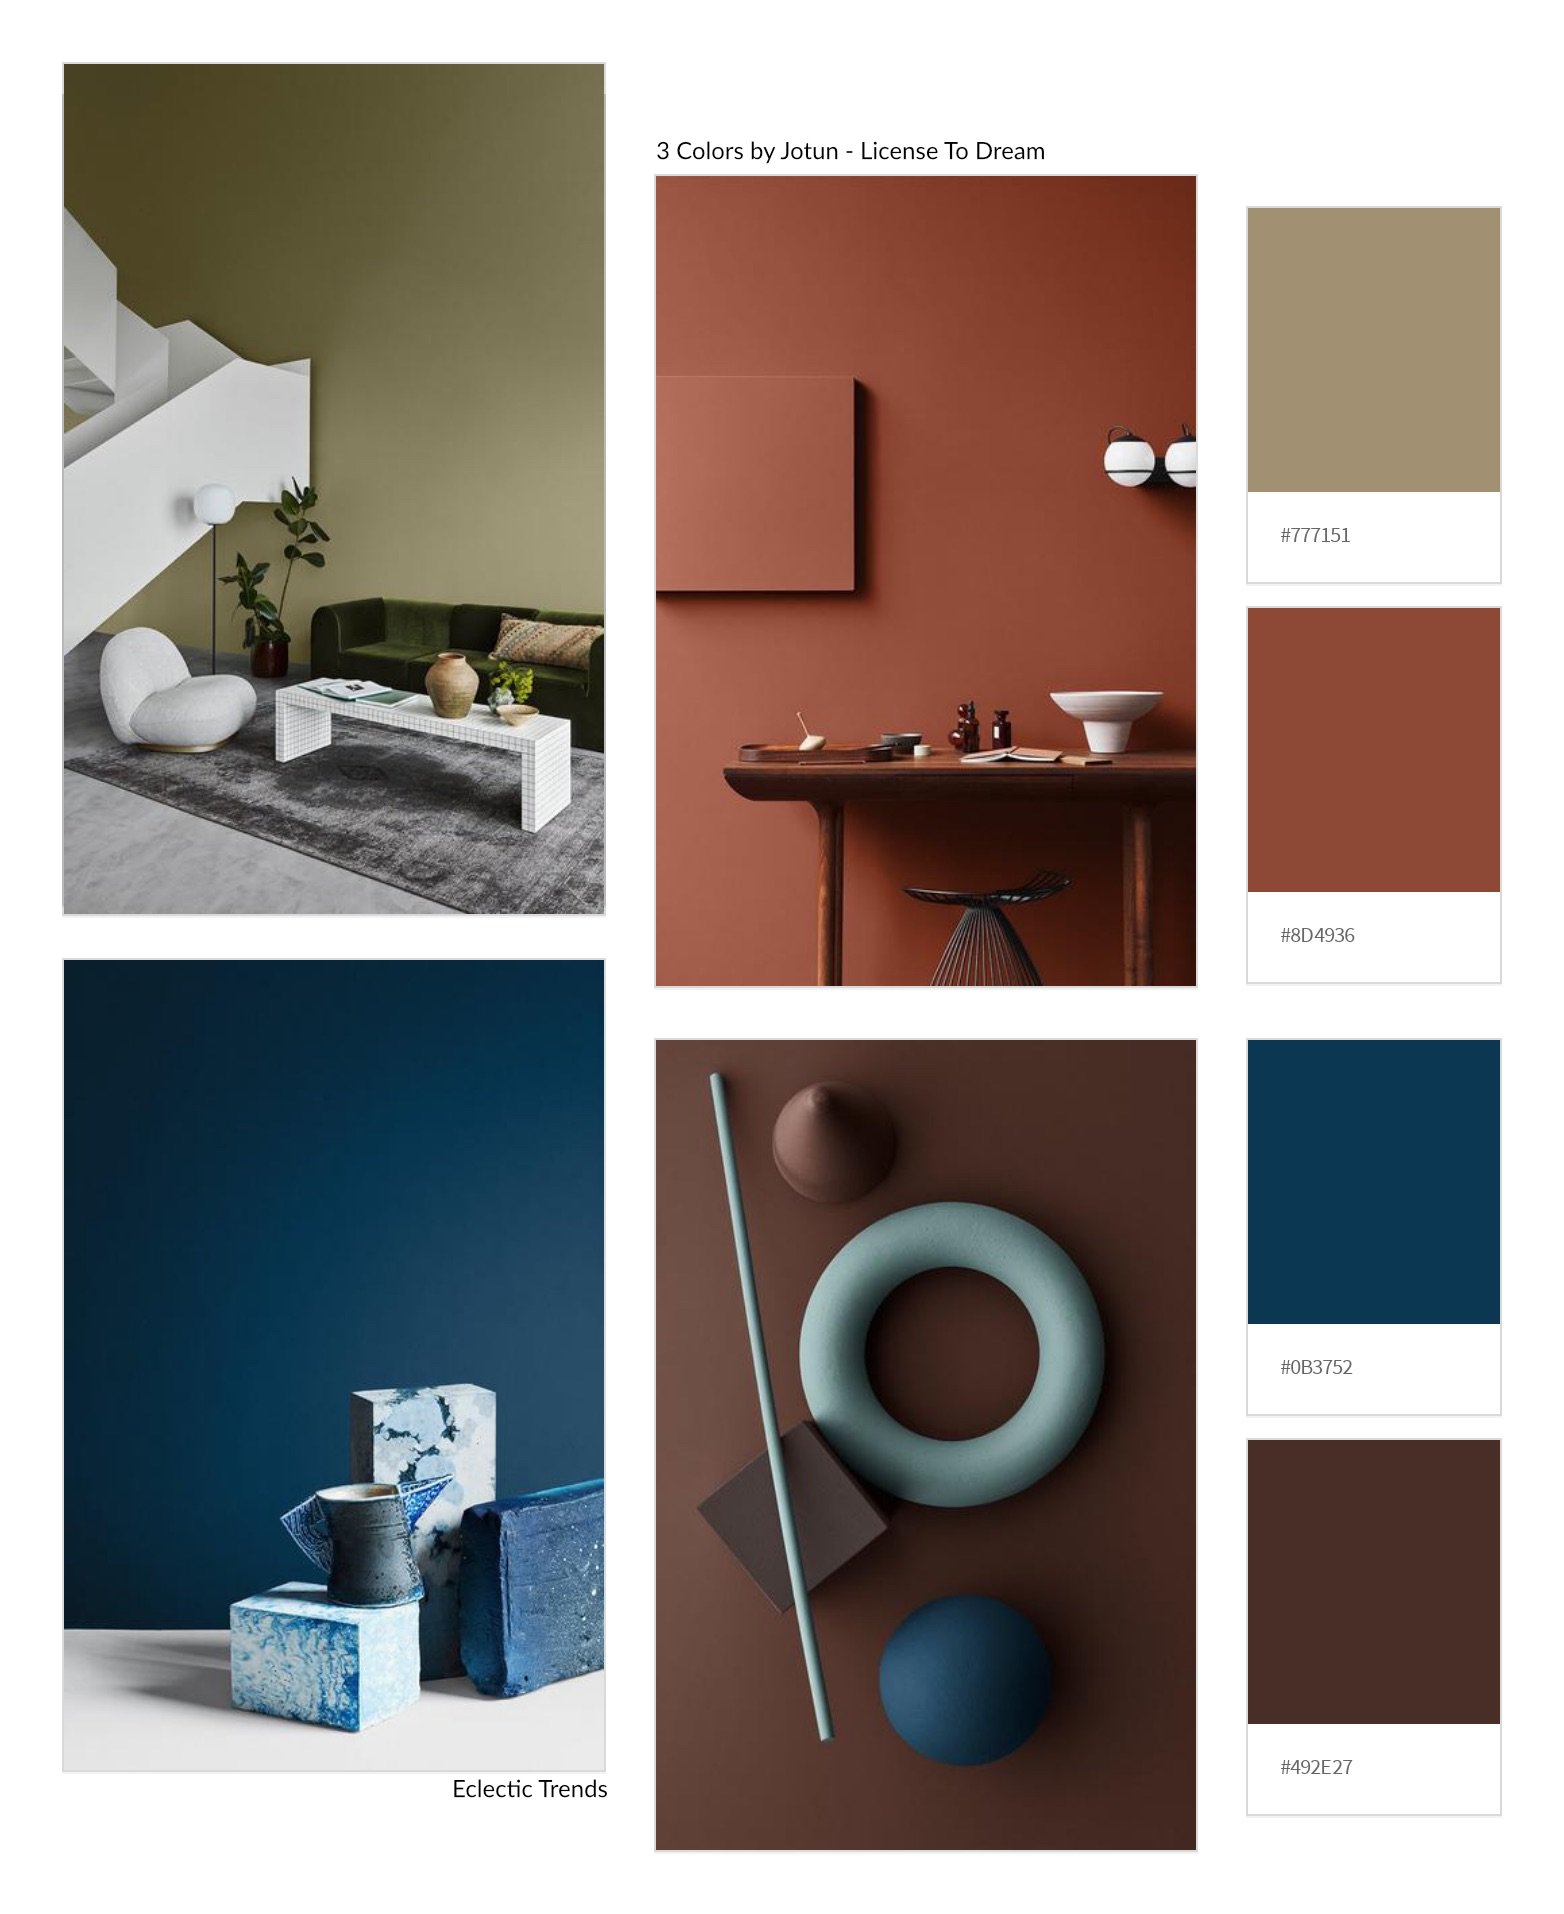 Color Universe 2020 Jotun Meditative State Of Mind | Eclectic Trends